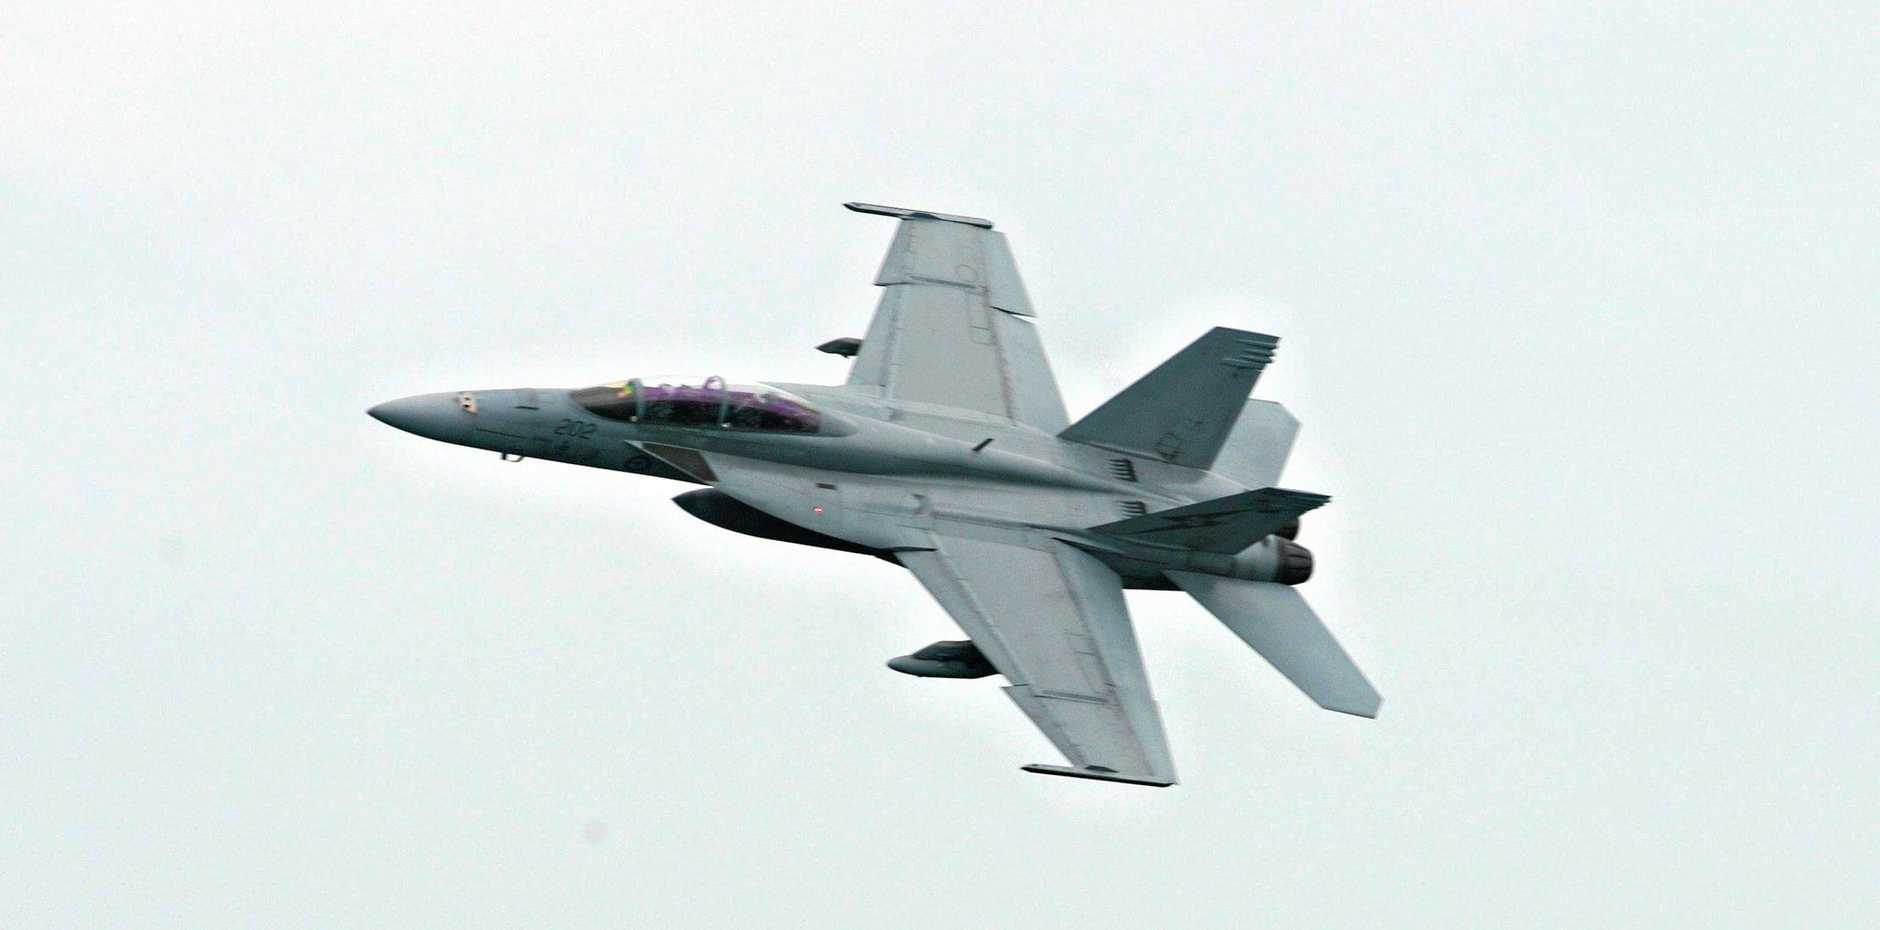 Four F/A-18F Super Hornet aircraft will take to the sky today for Anzac Day.